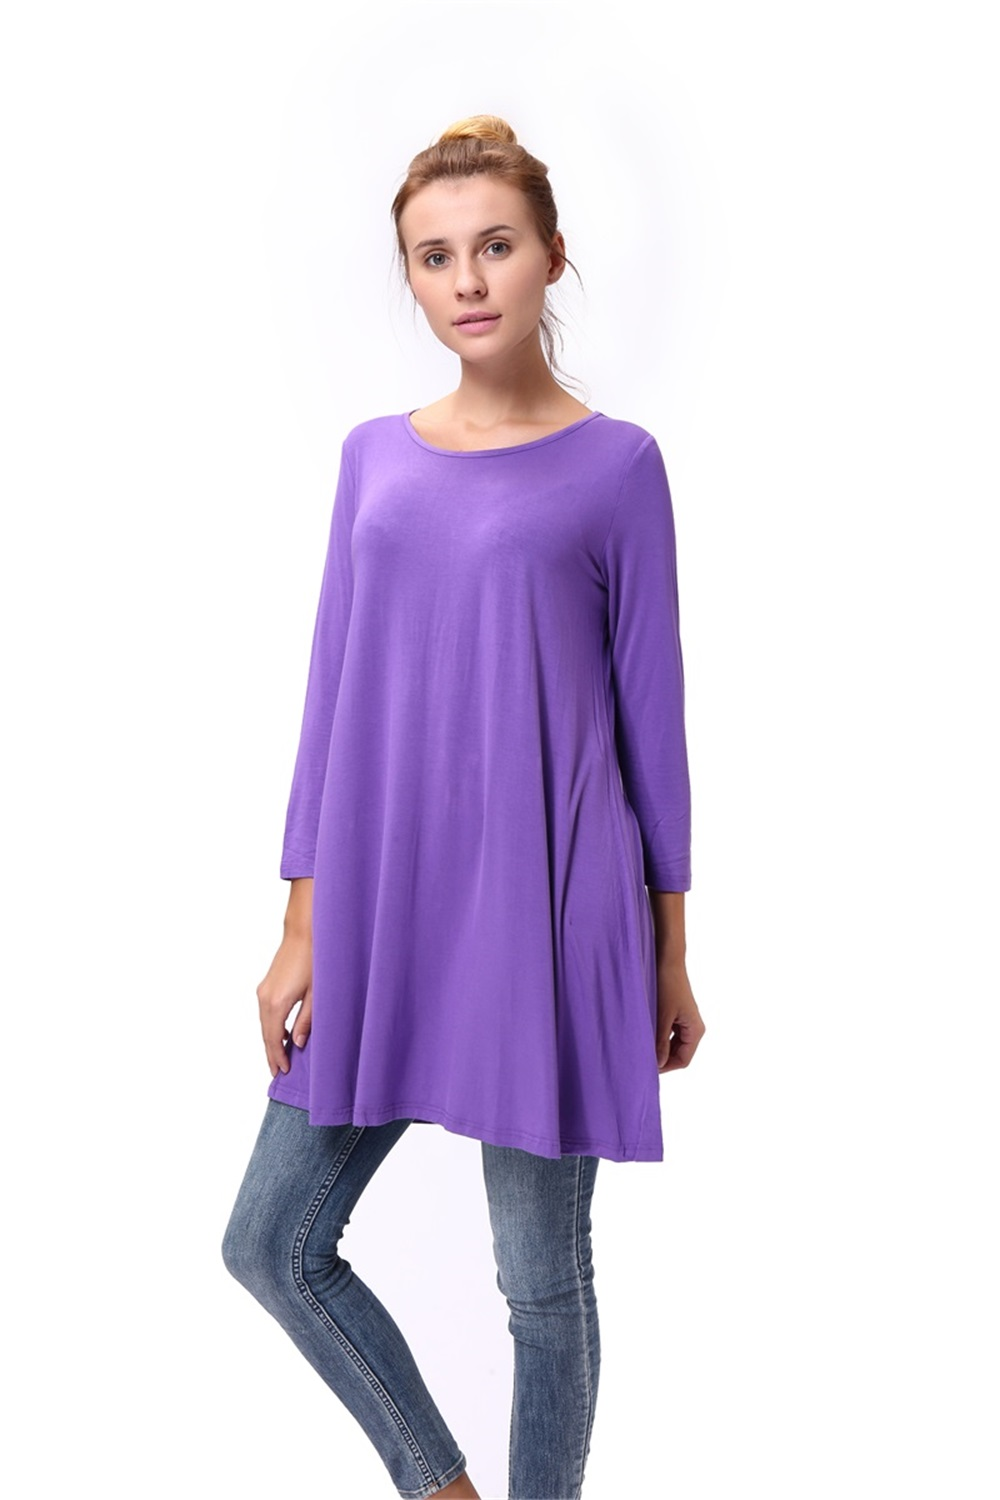 Women-039-s-Long-Tunic-Top-3-4-Sleeve-Dolman-Boat-Neck-USA-Dress-S-M-L-1X-2X-3X-PLUS thumbnail 42